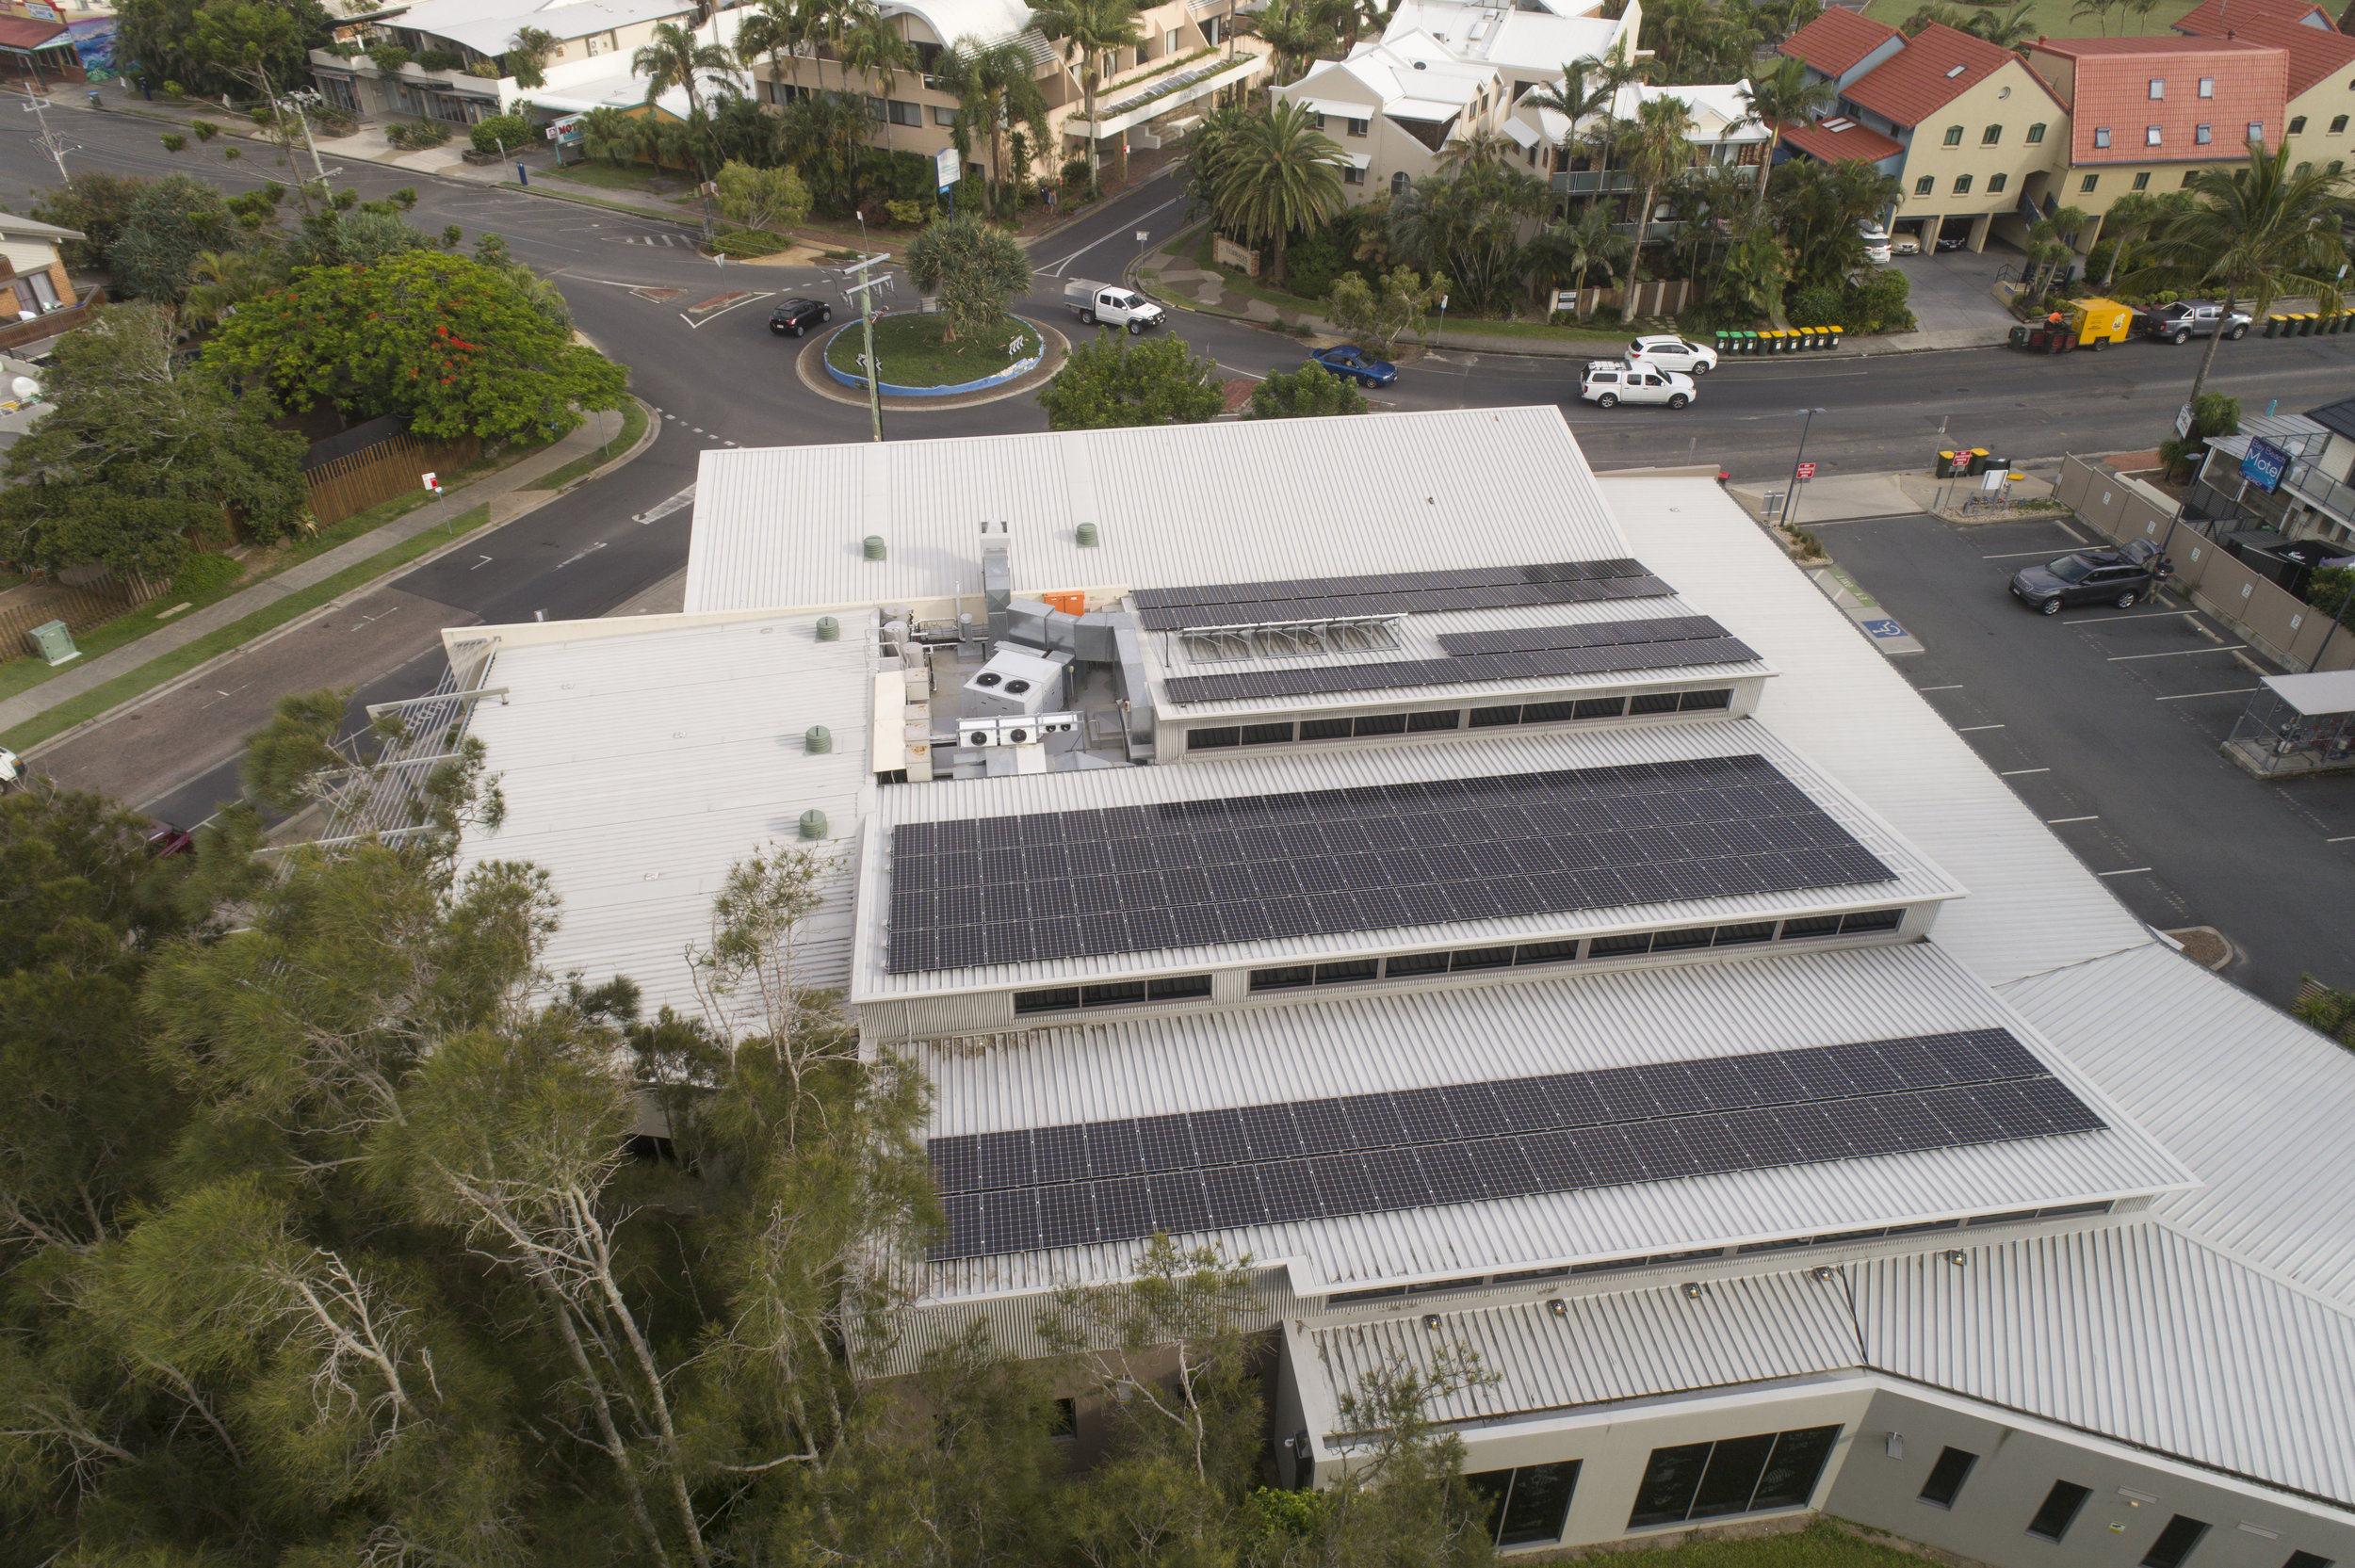 Commercial installation in Byron Bay using LG320W modules